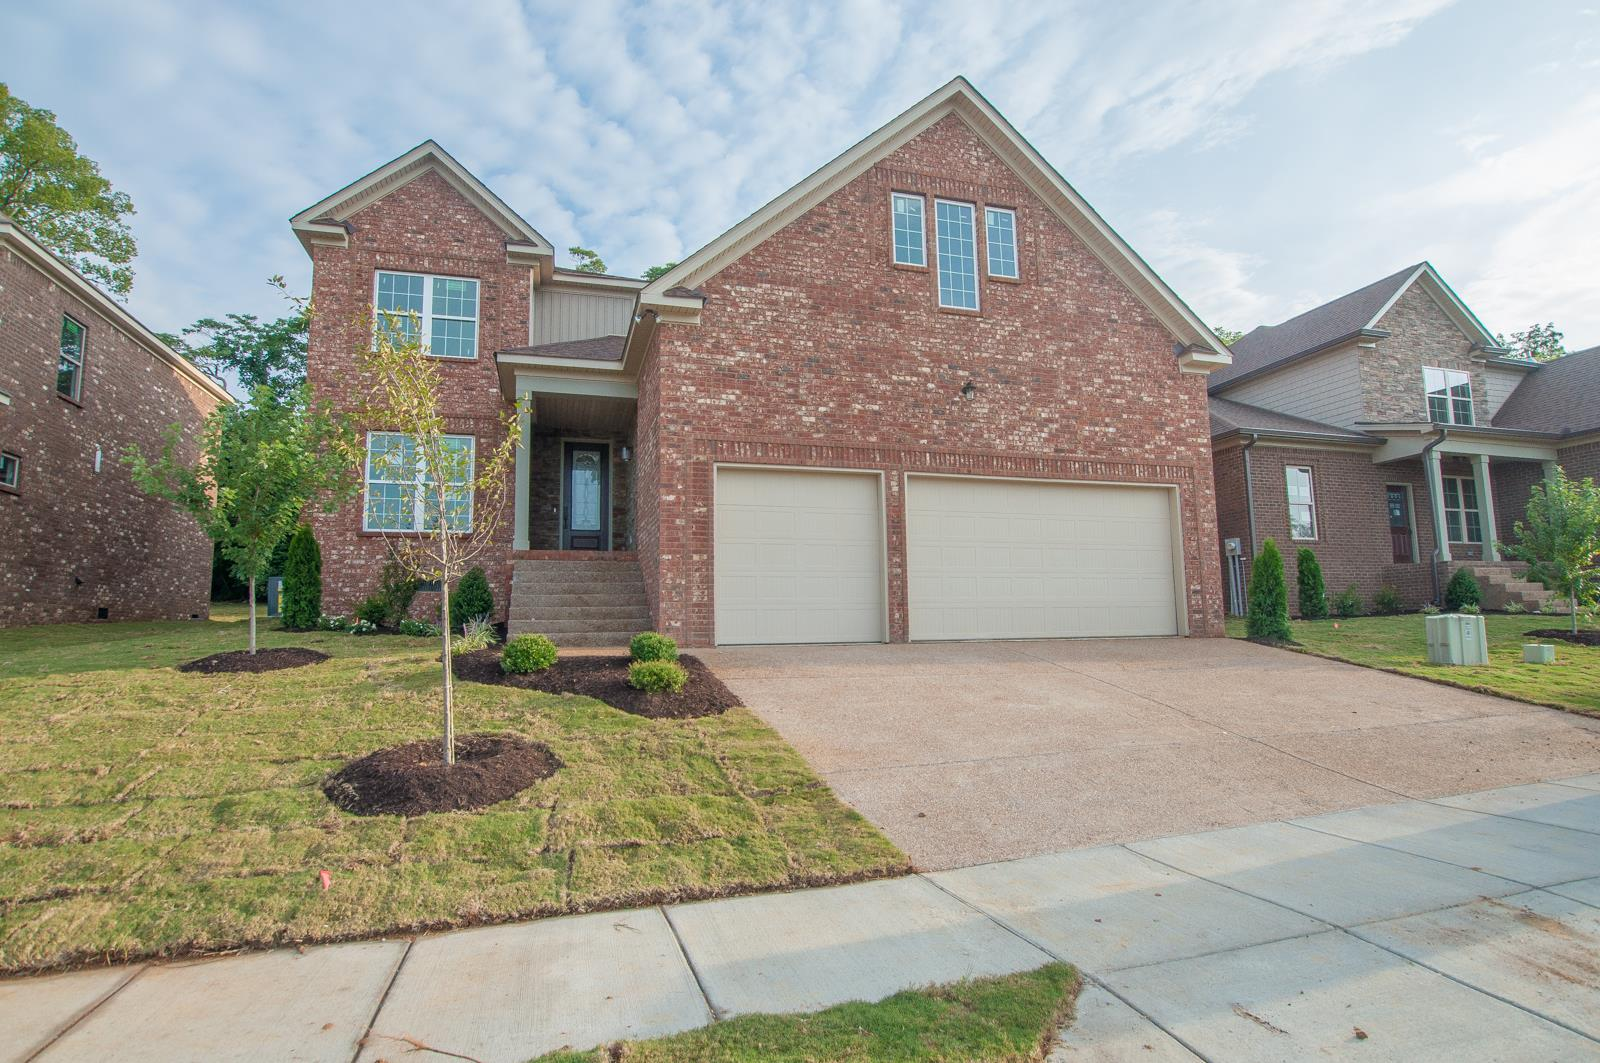 7117 SILVERWOOD TRAIL 37076 - One of Hermitage Homes for Sale